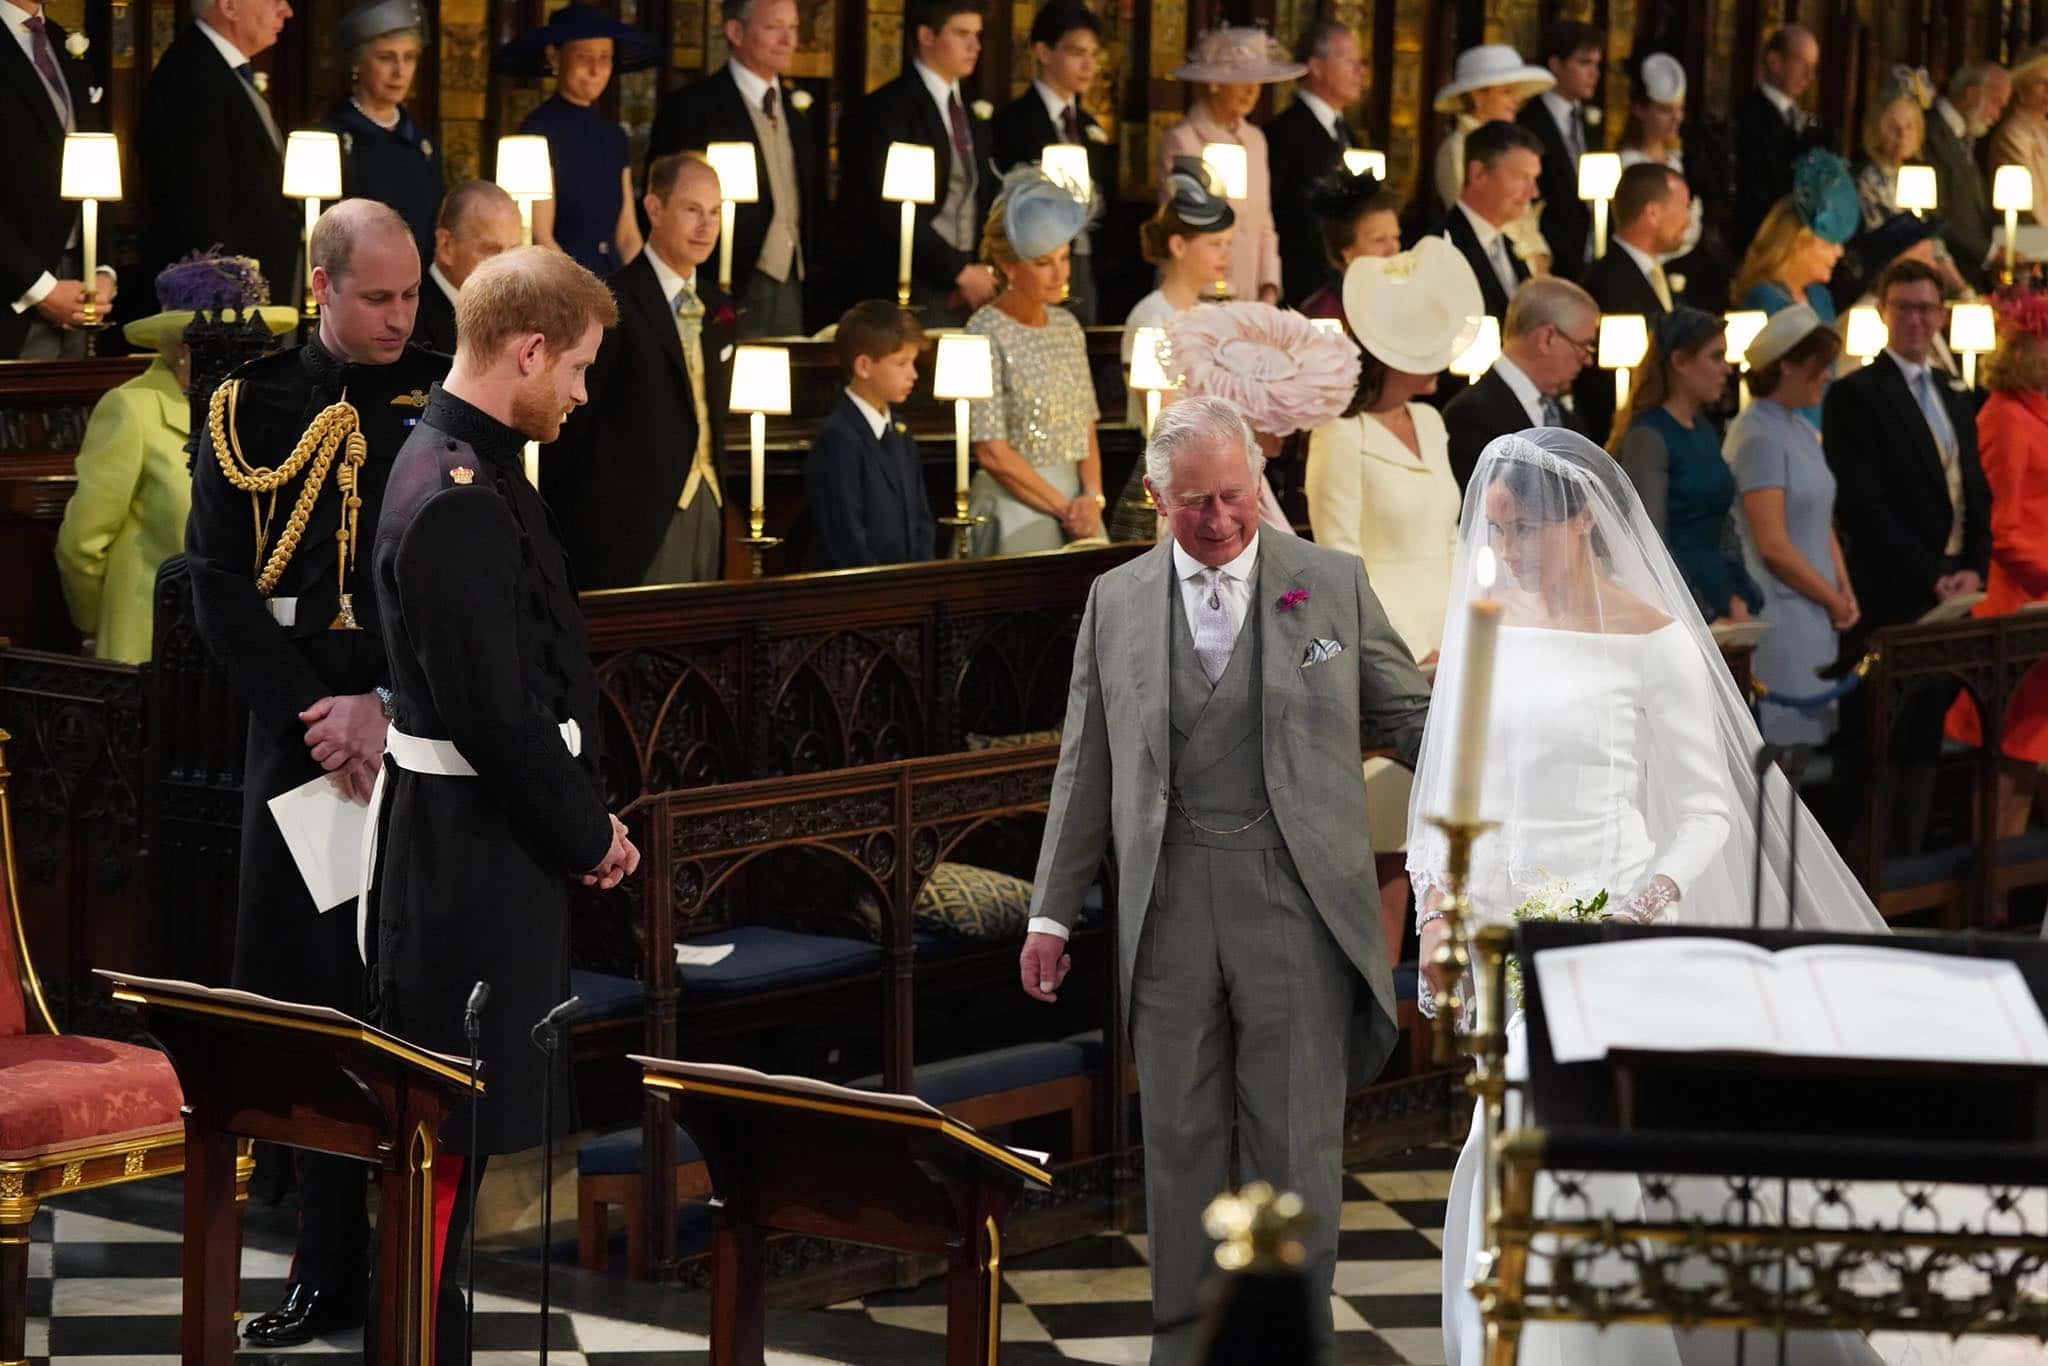 Prince Charles walking Meghan Markle down the aisle (Facebook)